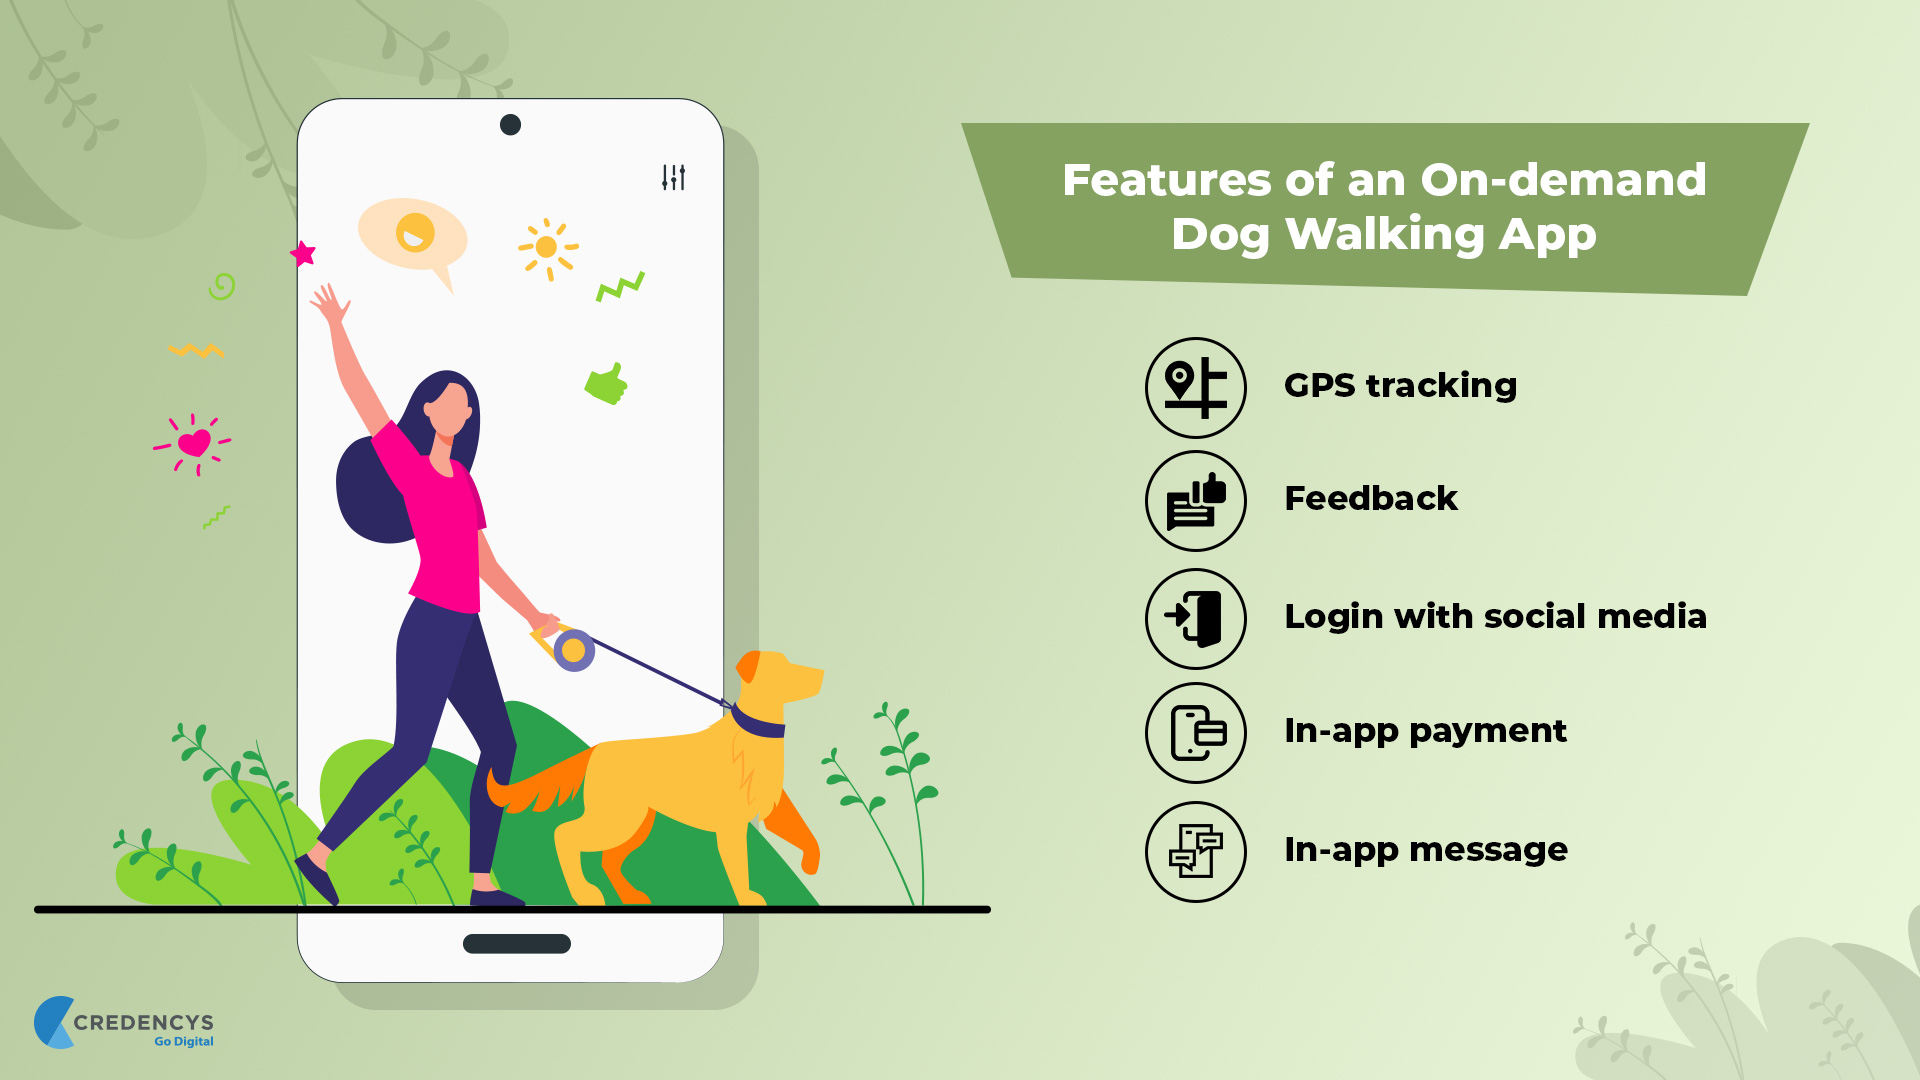 Must-Have Features of an On-demand Dog Walking App